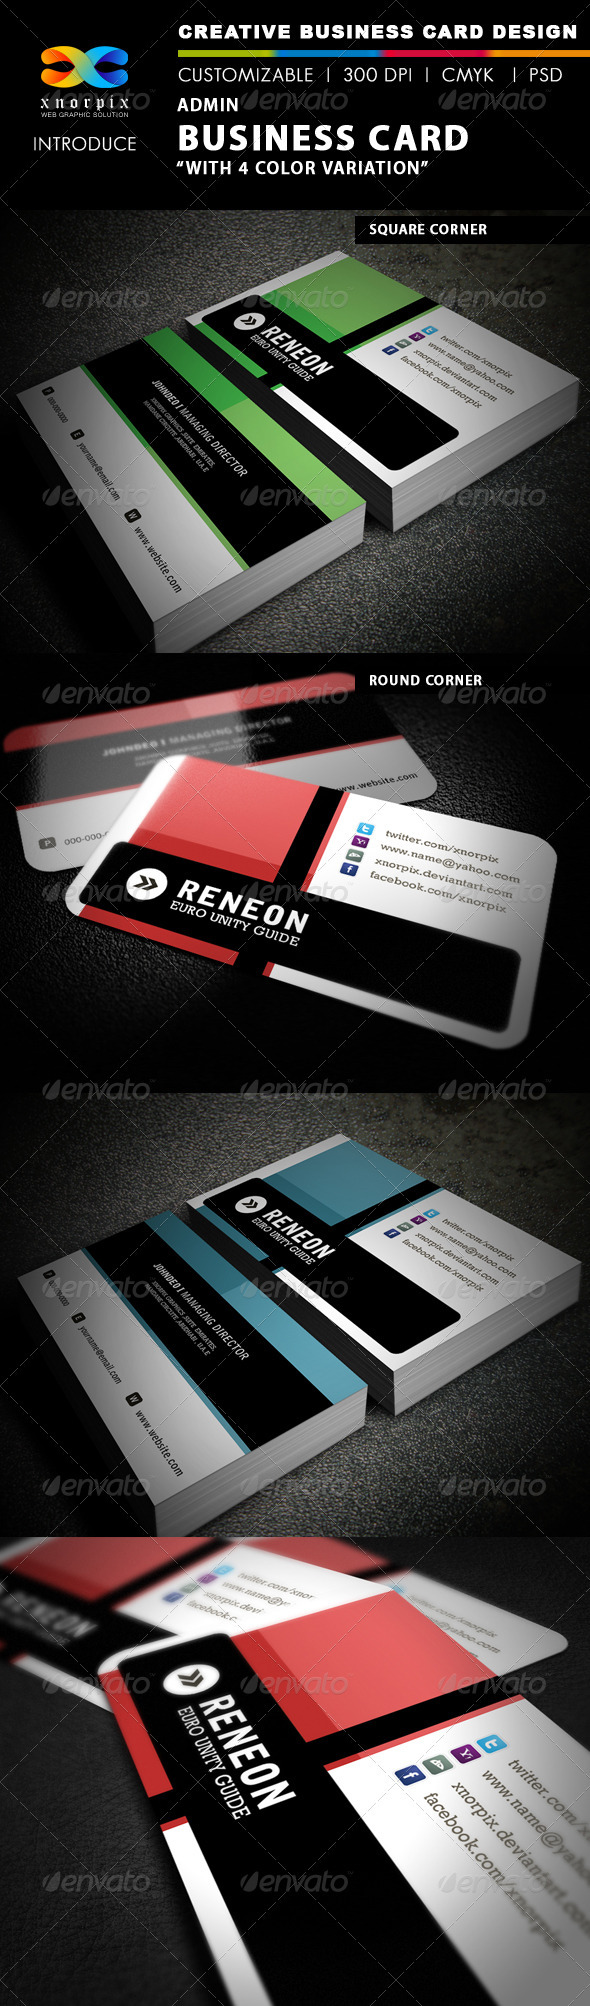 Admin Business Card - Corporate Business Cards